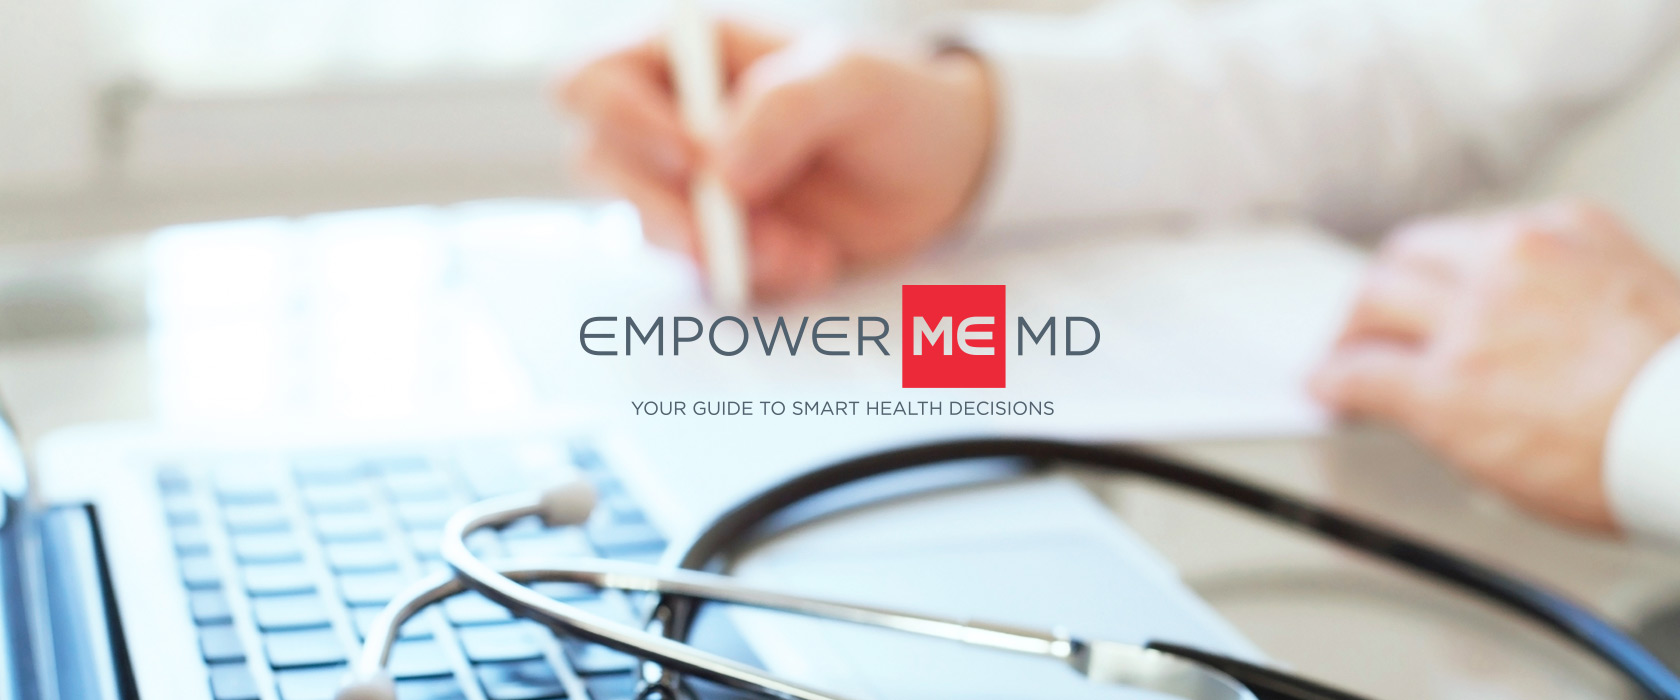 EmpowerMe MD Medical Program Logo Design